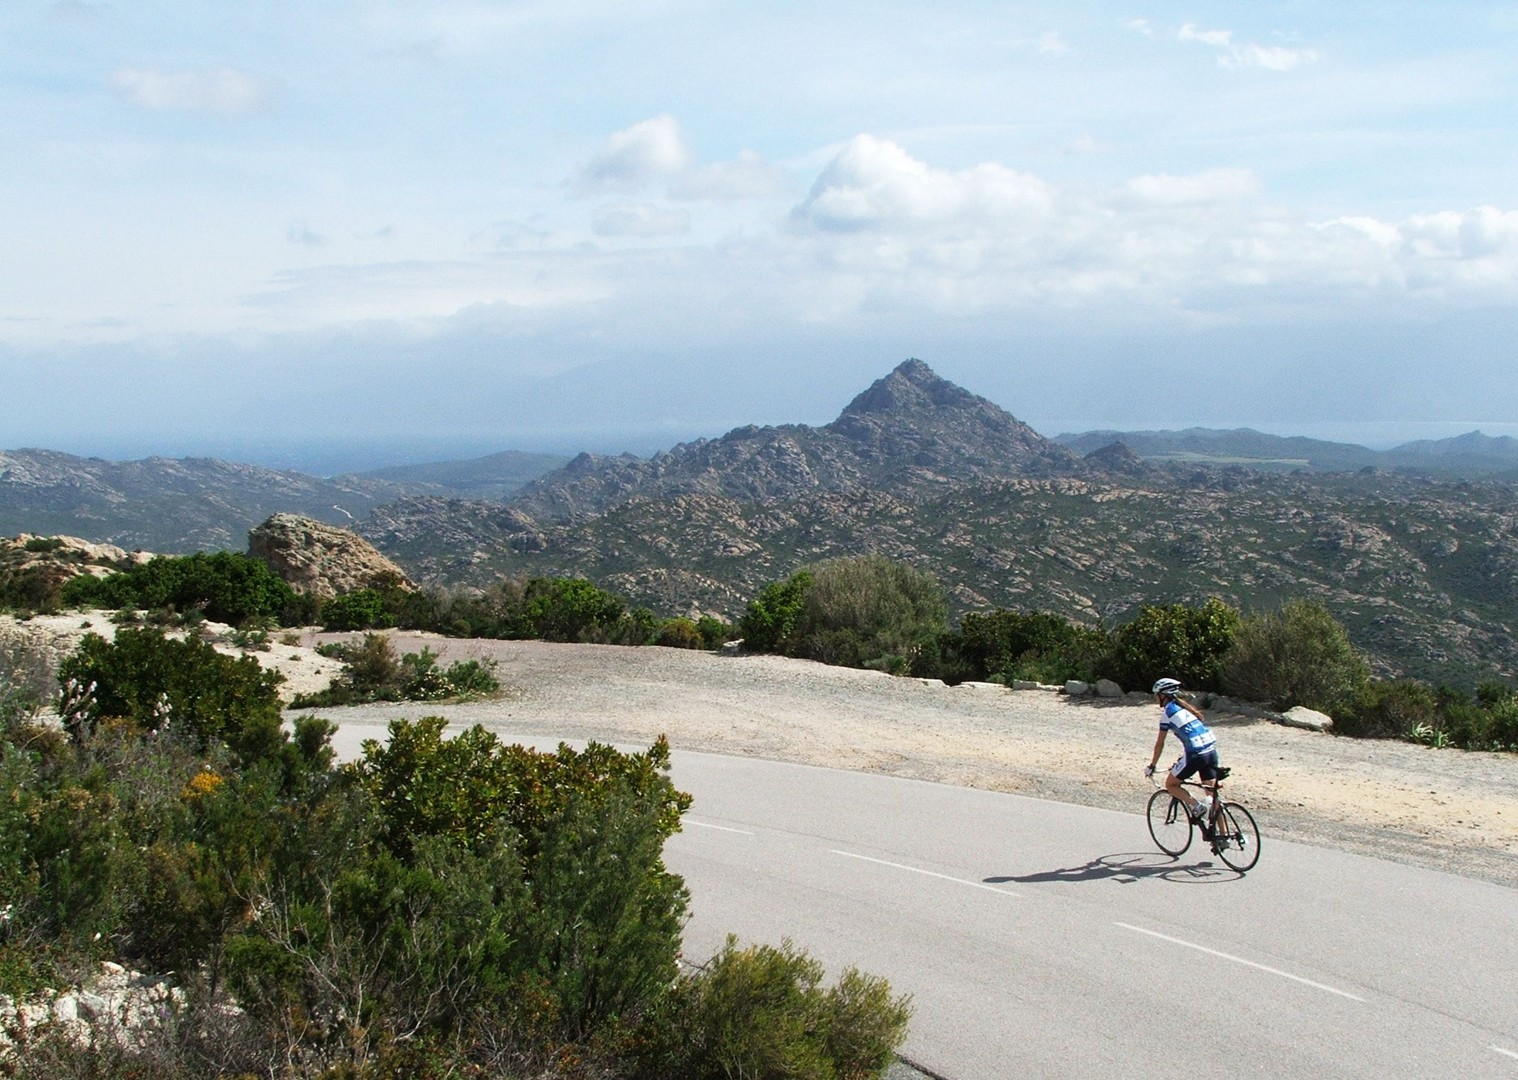 calvi-guided-road-cycling-holiday-the-beautiful-isle-france-corsica.jpg - France - Corsica - The Beautiful Isle - Guided Road Cycling Holiday - Road Cycling